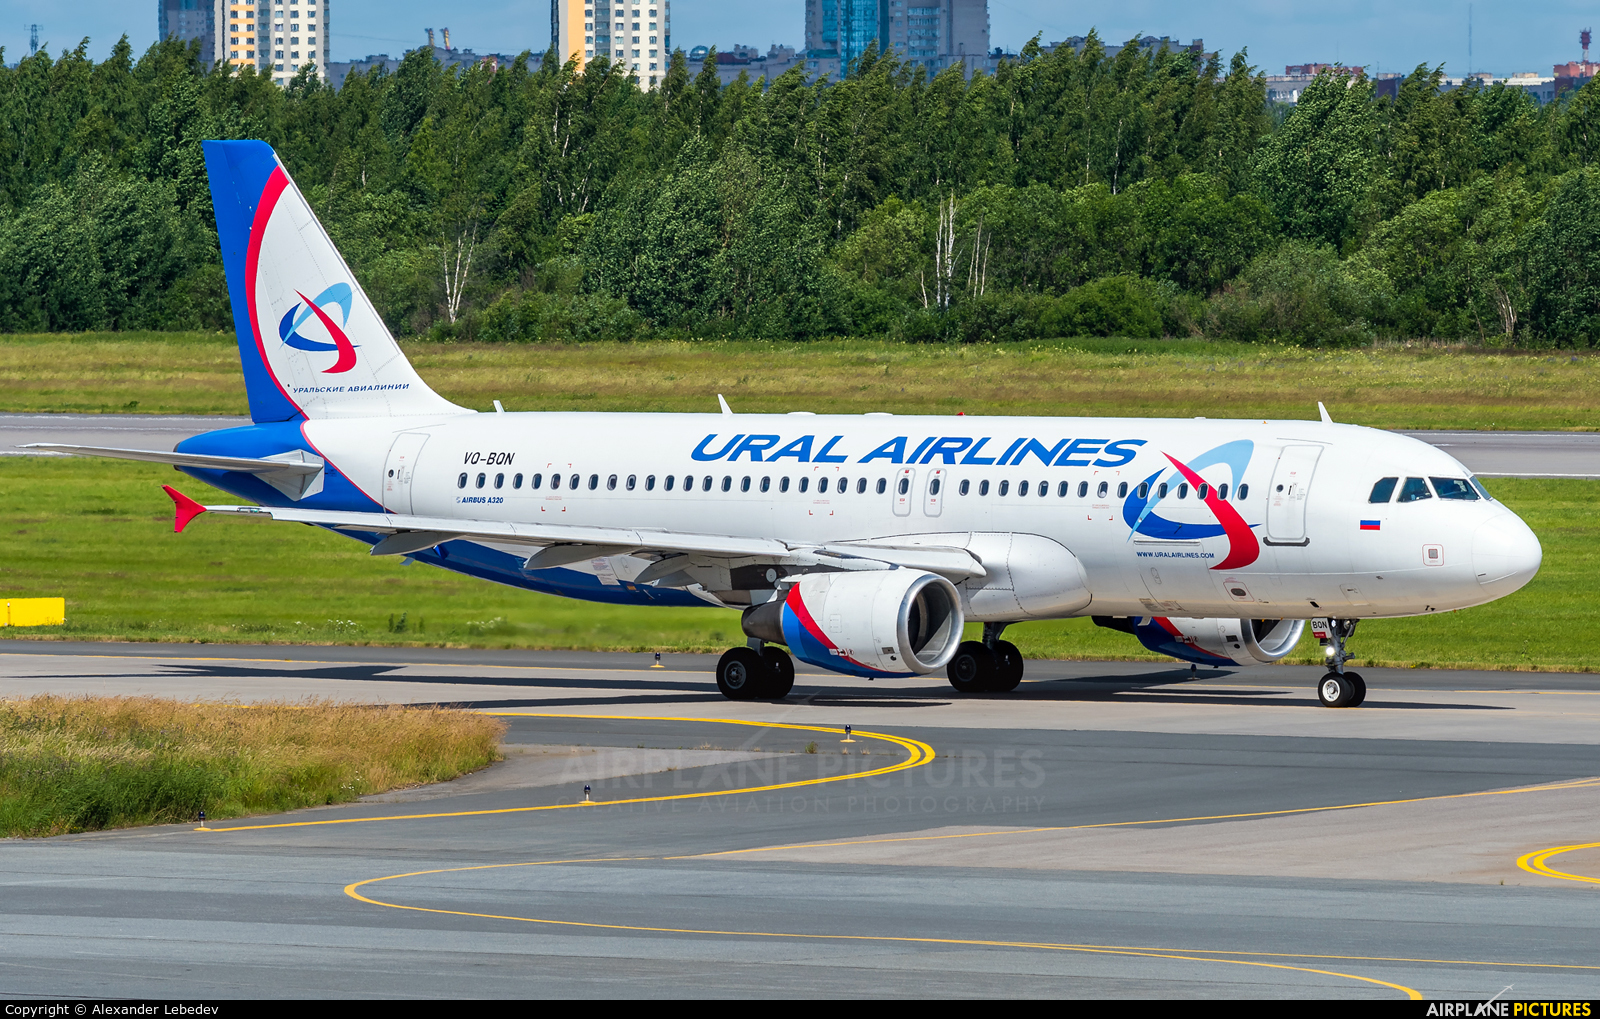 Ural Airlines VQ-BQN aircraft at St. Petersburg - Pulkovo